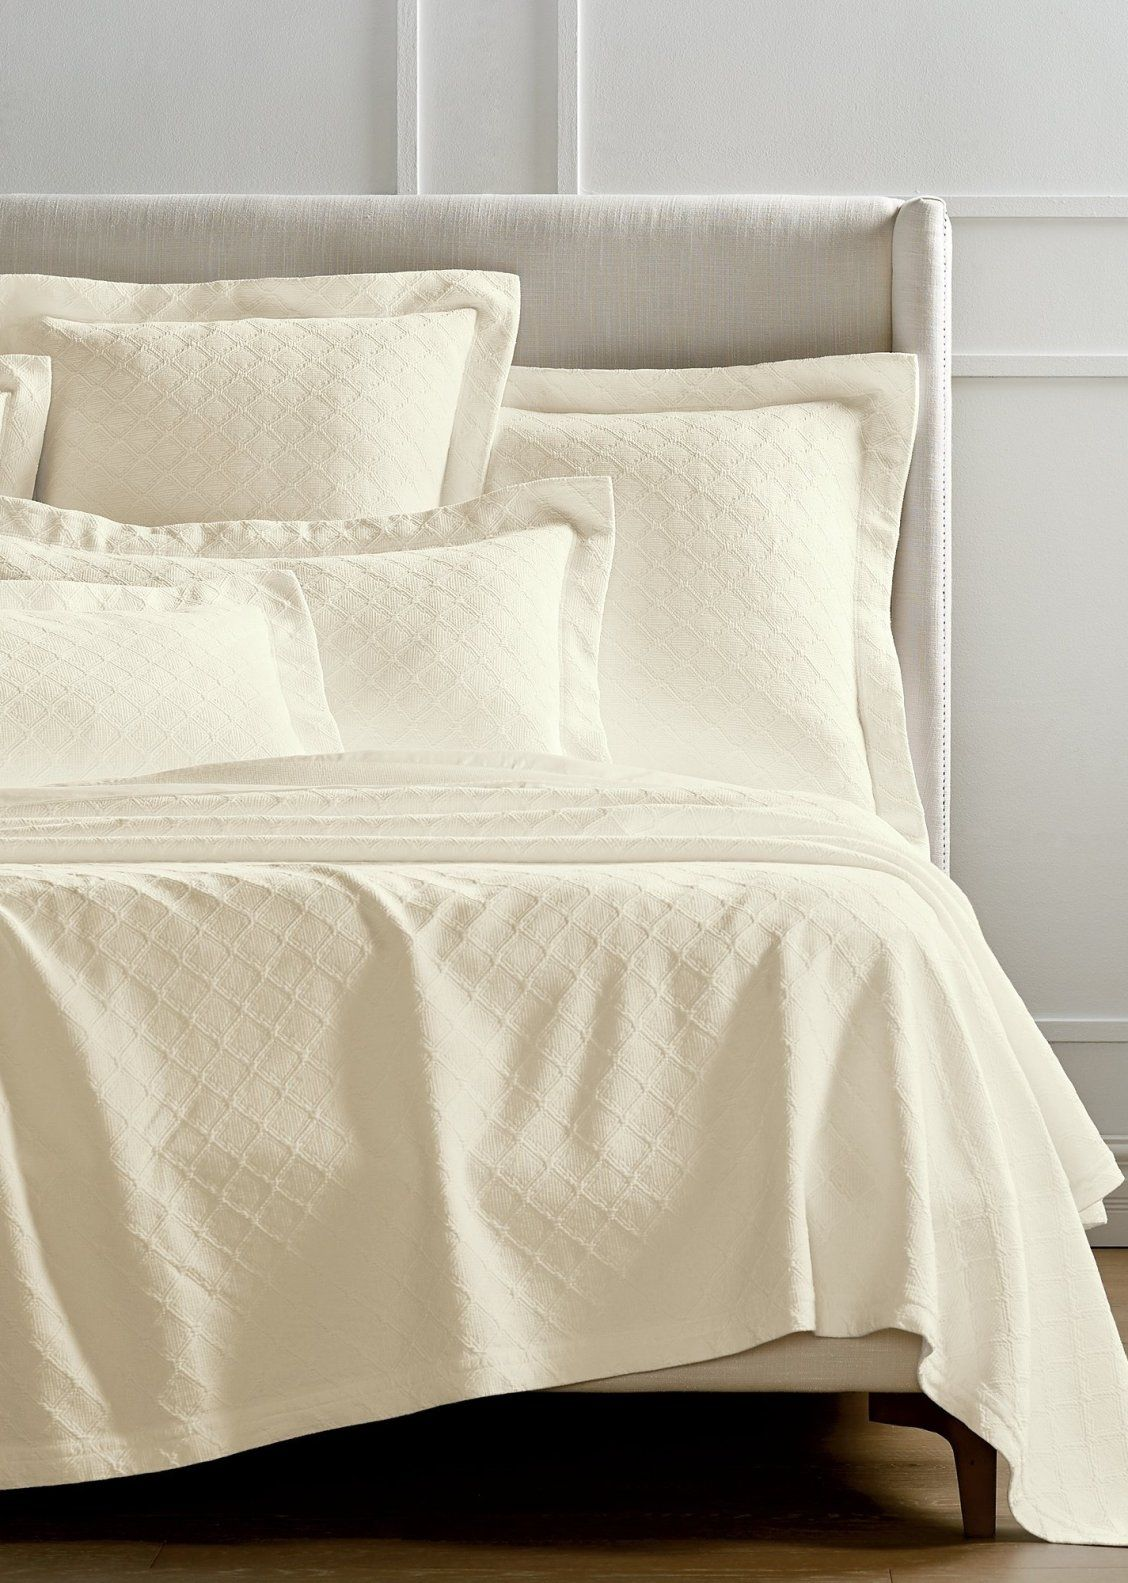 Resort Diamond Matelasse Bedding Collection Bedding Collections